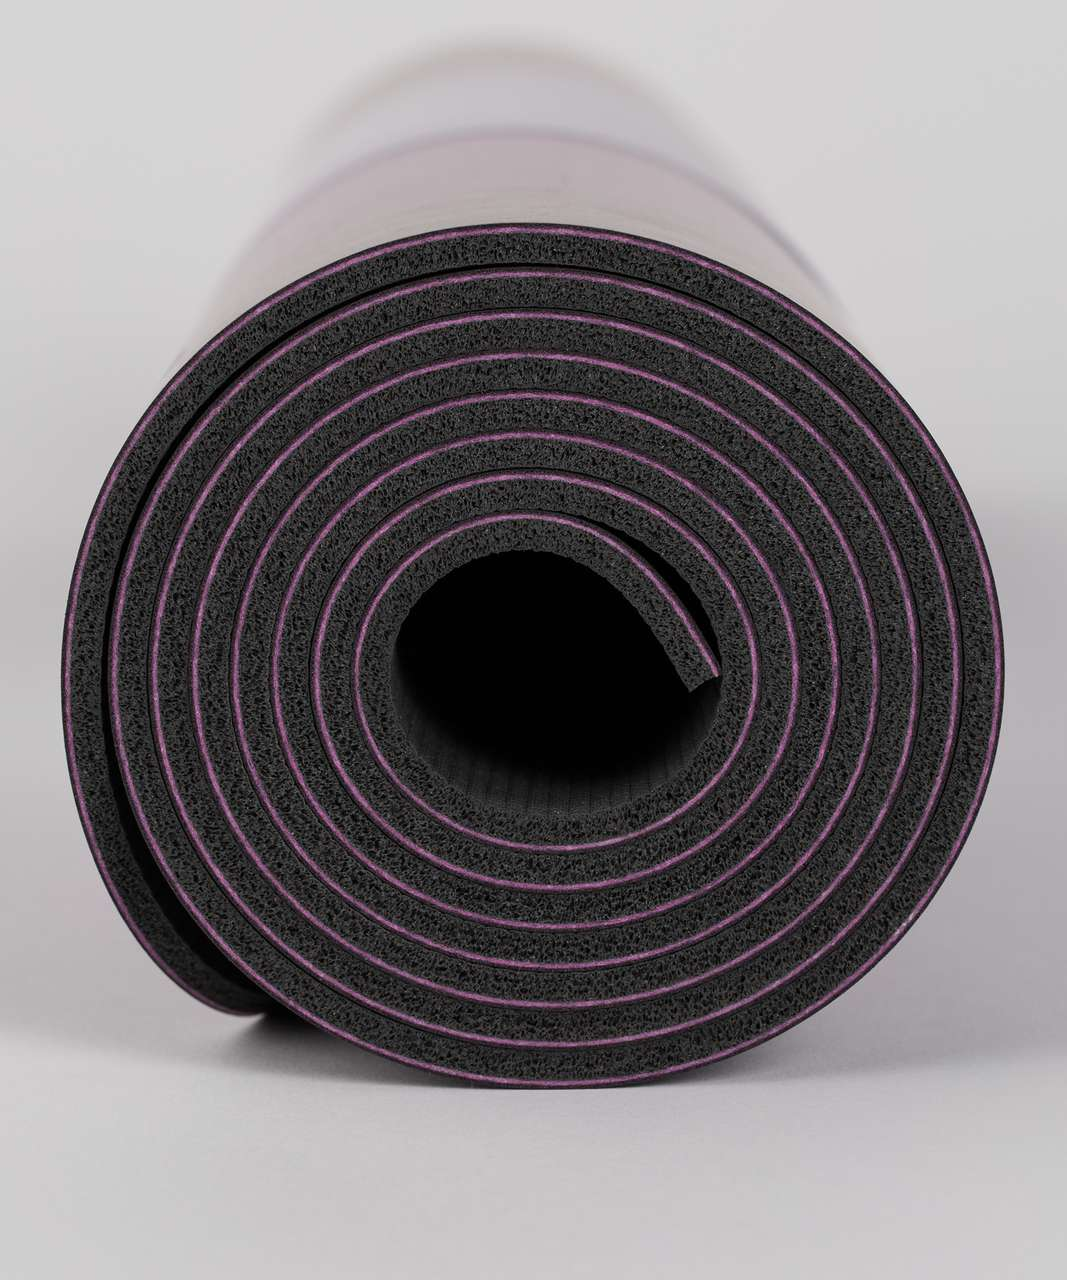 Lululemon The Reversible Mat 5mm - Dark Mystic / Black / Black